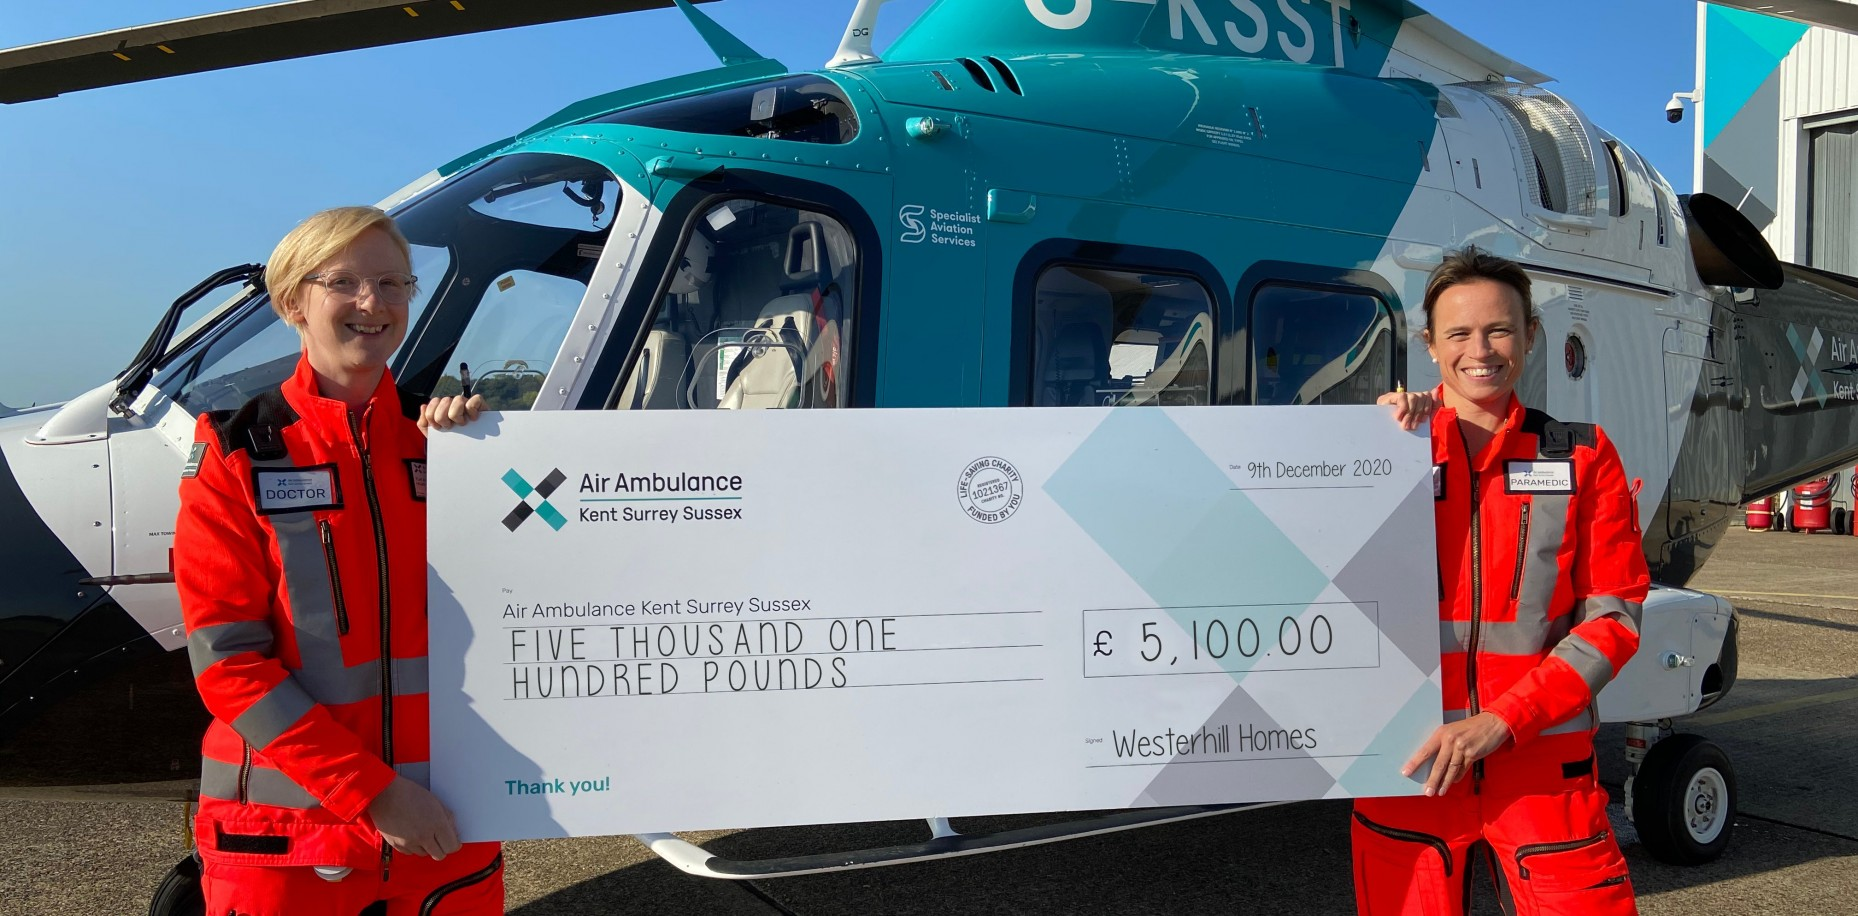 We are delighted to announce our latest donation to Air Ambulance Kent Surrey Sussex